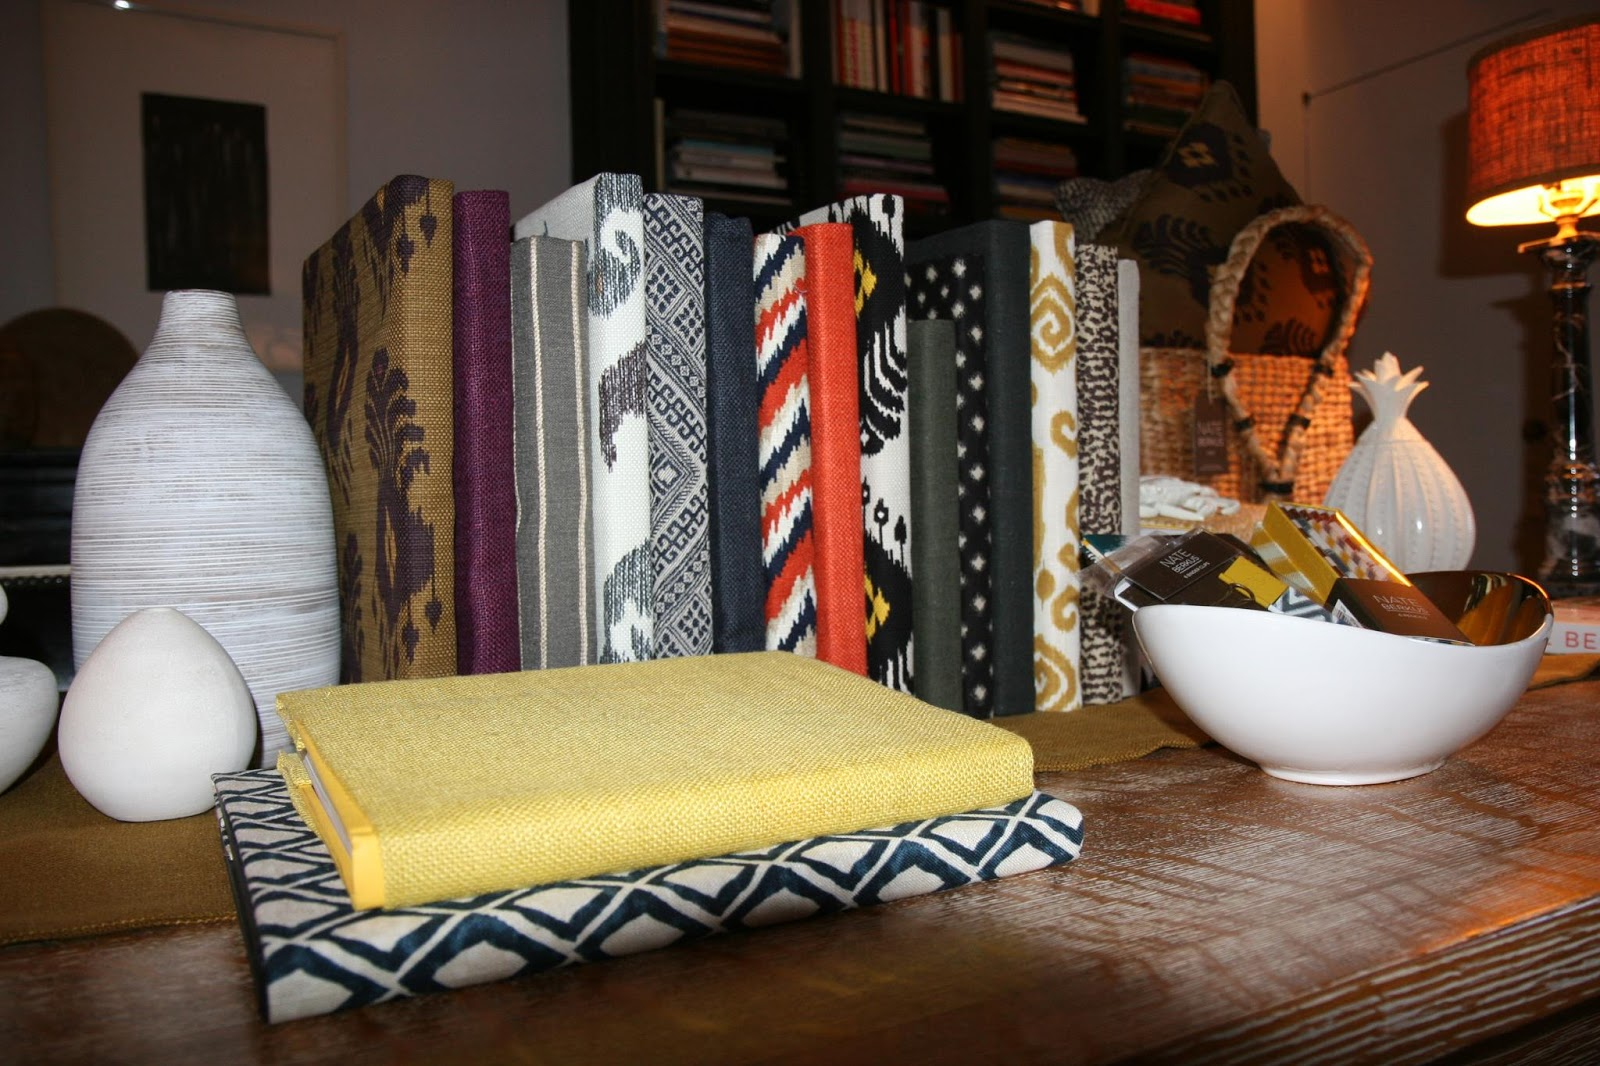 Fabric Book Covers Target : Images about nate berkus fabrics on pinterest